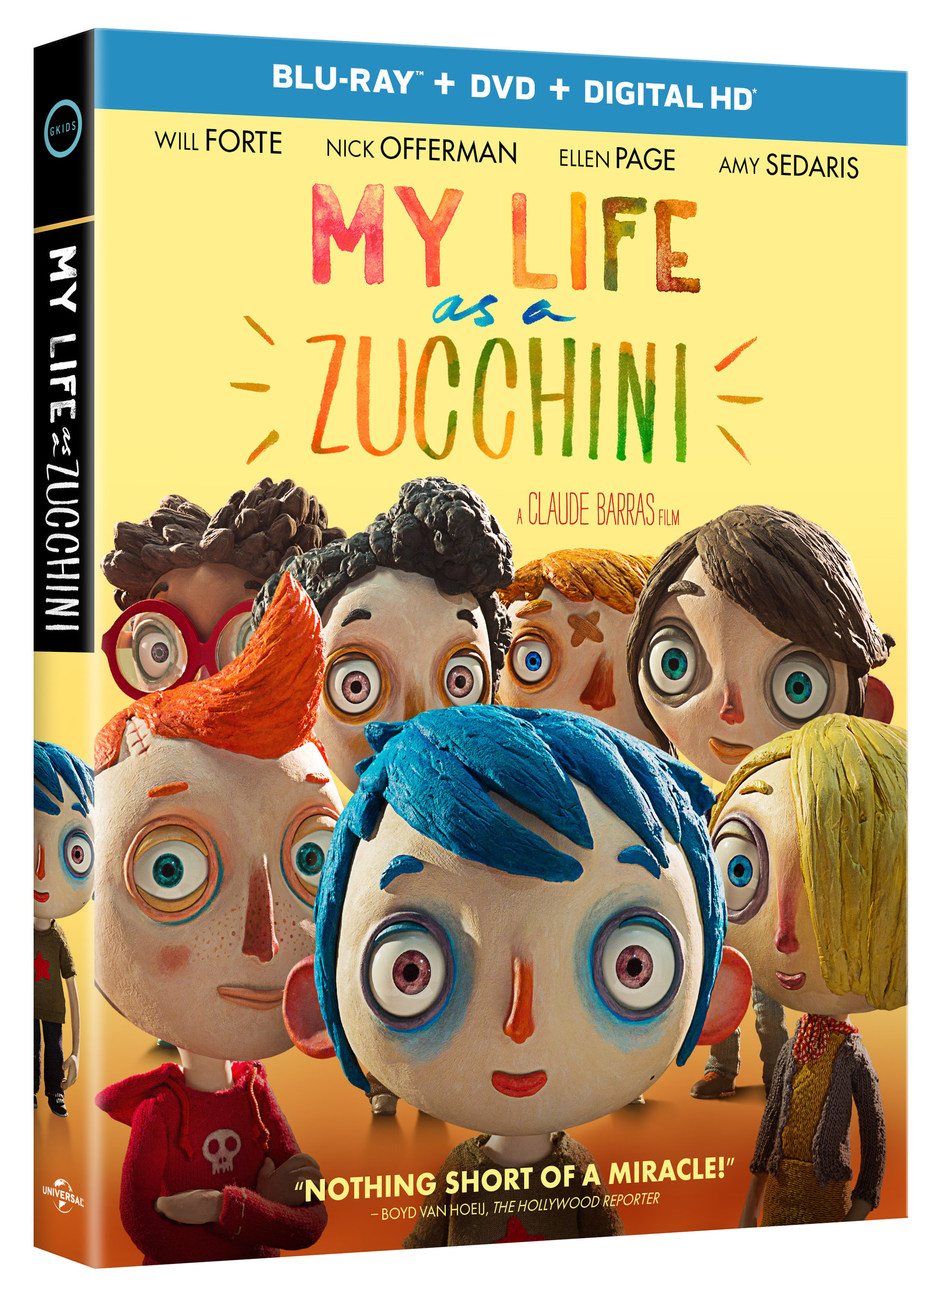 My Life As A Zucchini Blu-ray Review